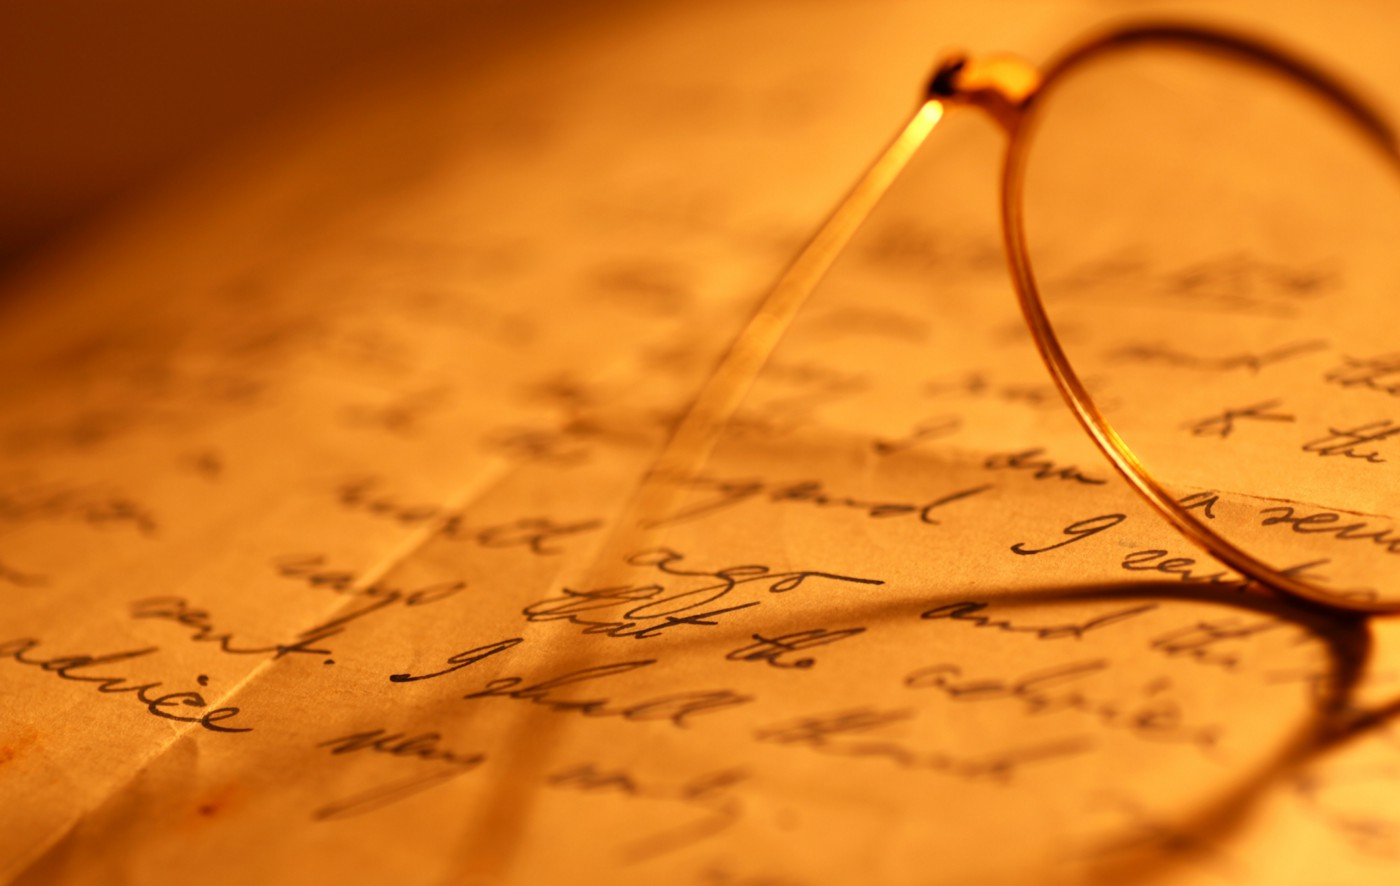 Closeup of glasses on a page scribbled with words.